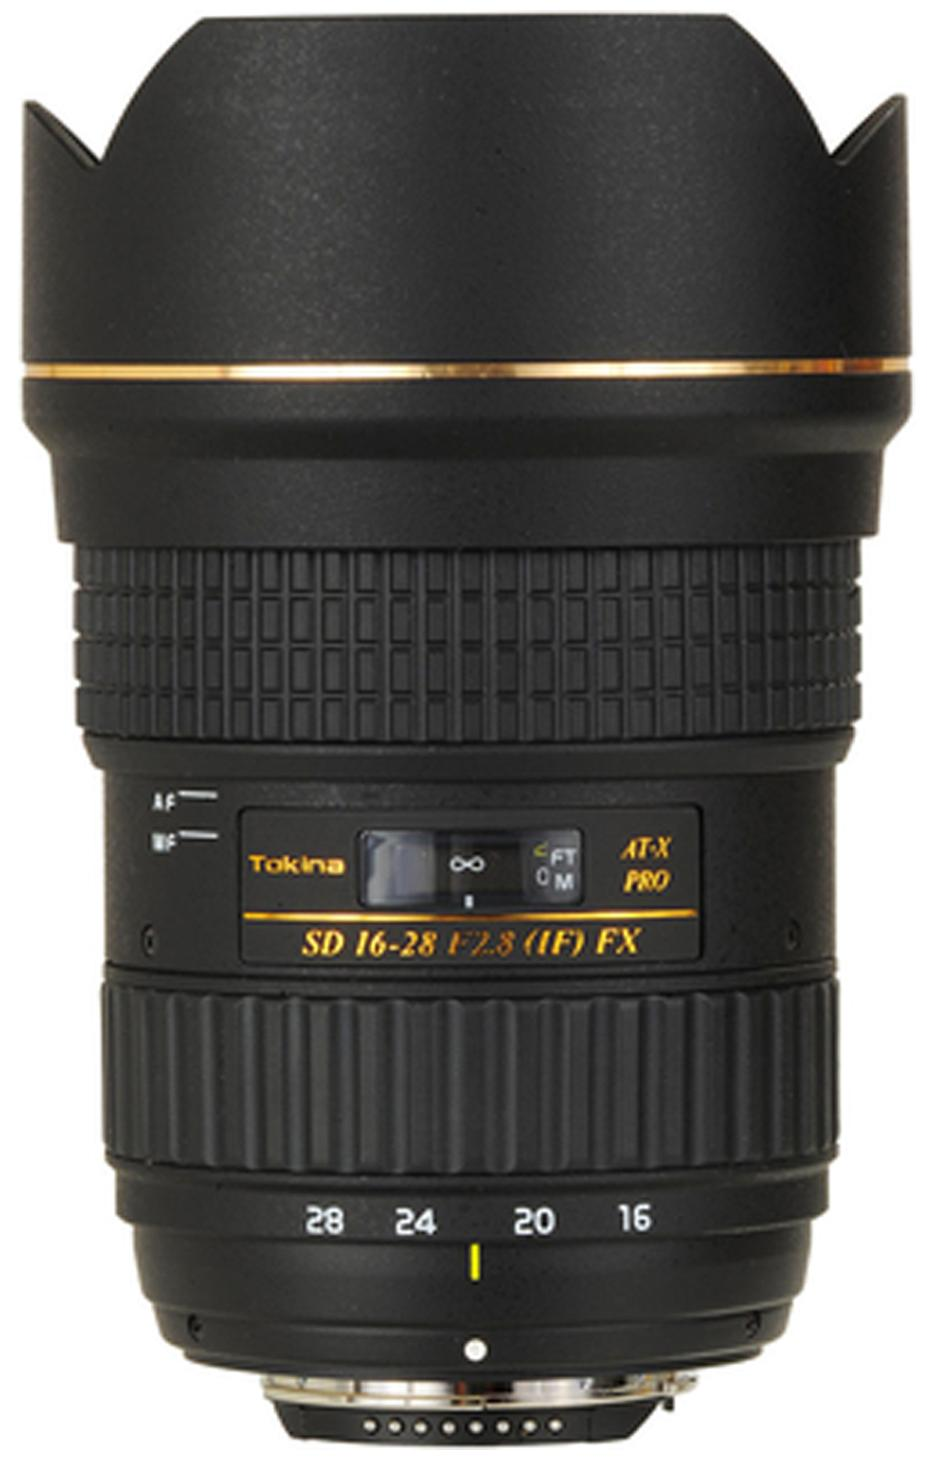 Tokina AT-X 16 - 28 mm F2.8 PRO FX Lens (Black) For Nikon Digital SLR Camera